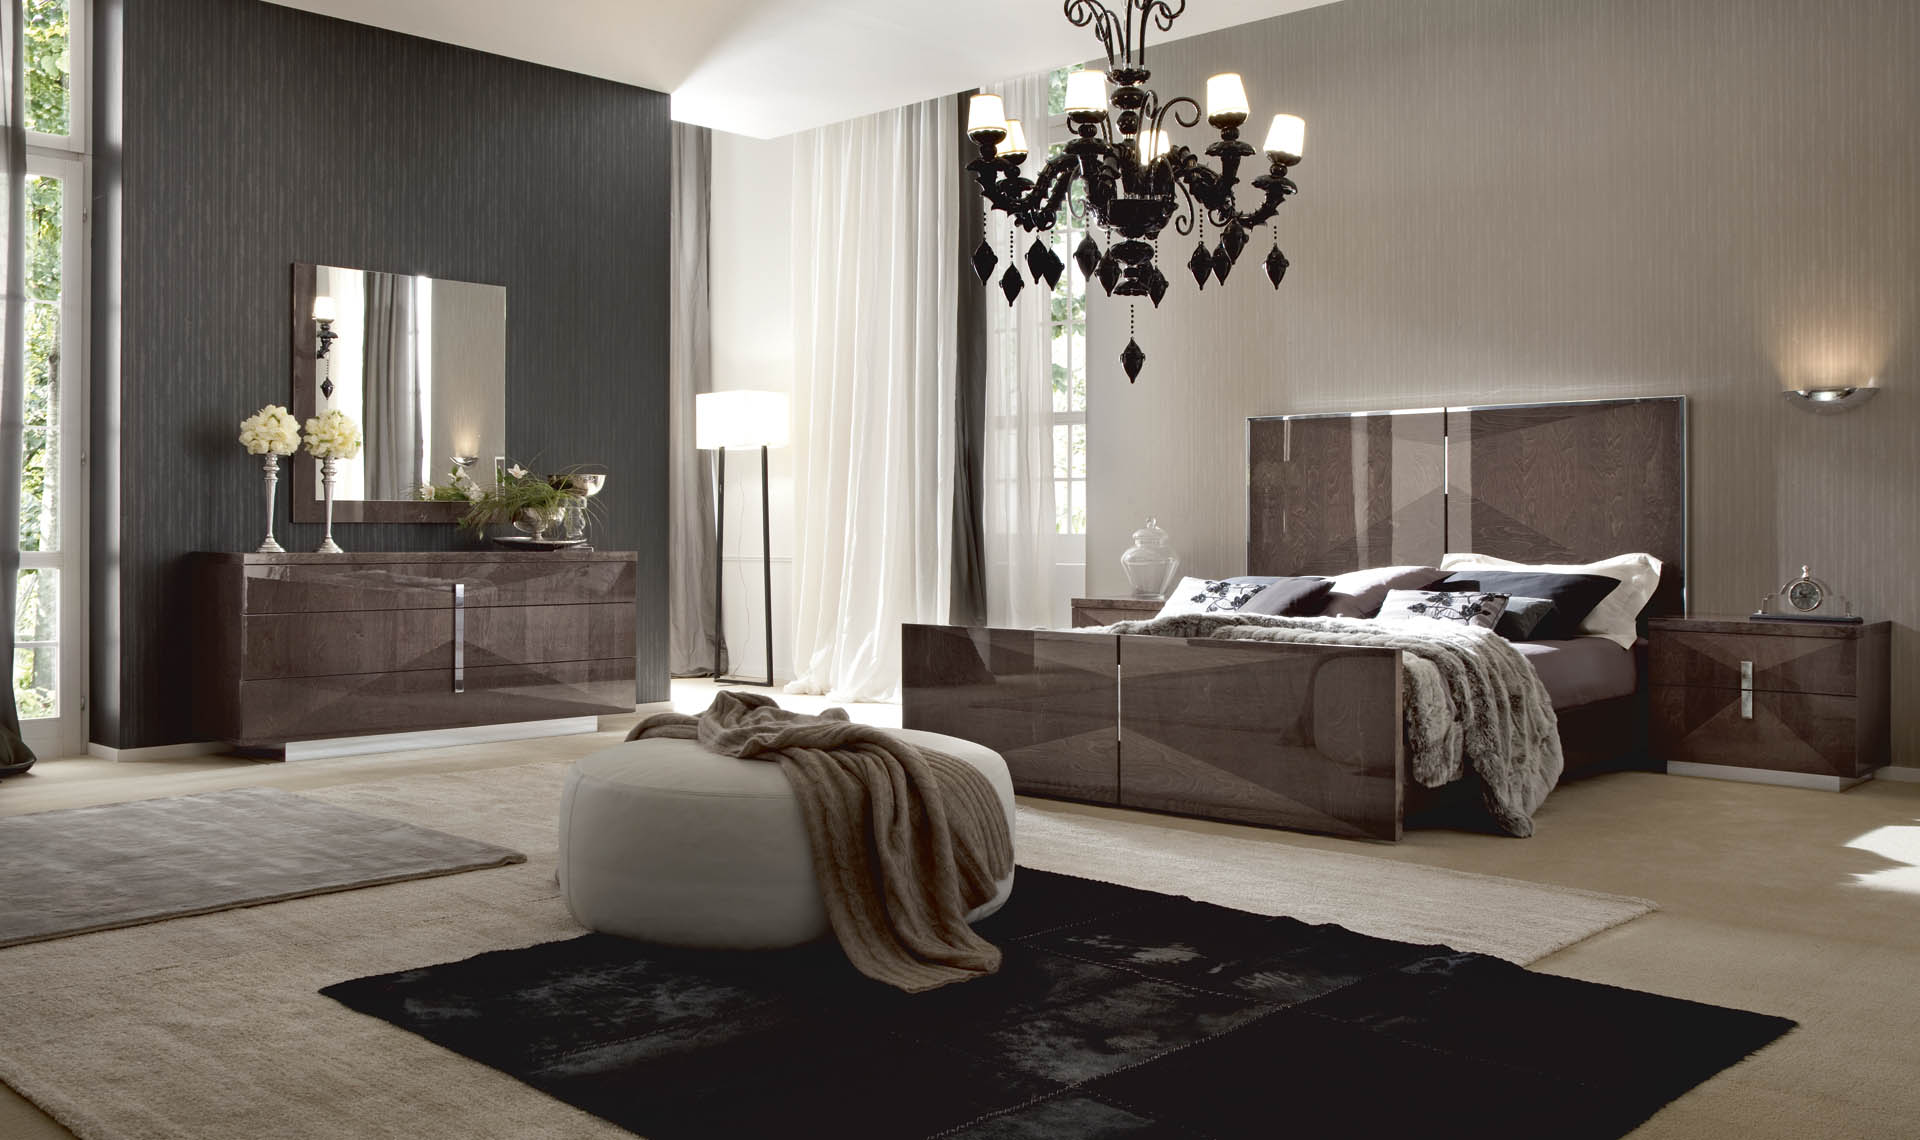 cool of photos from bedroom best i inside ideas amazing furniture apartment